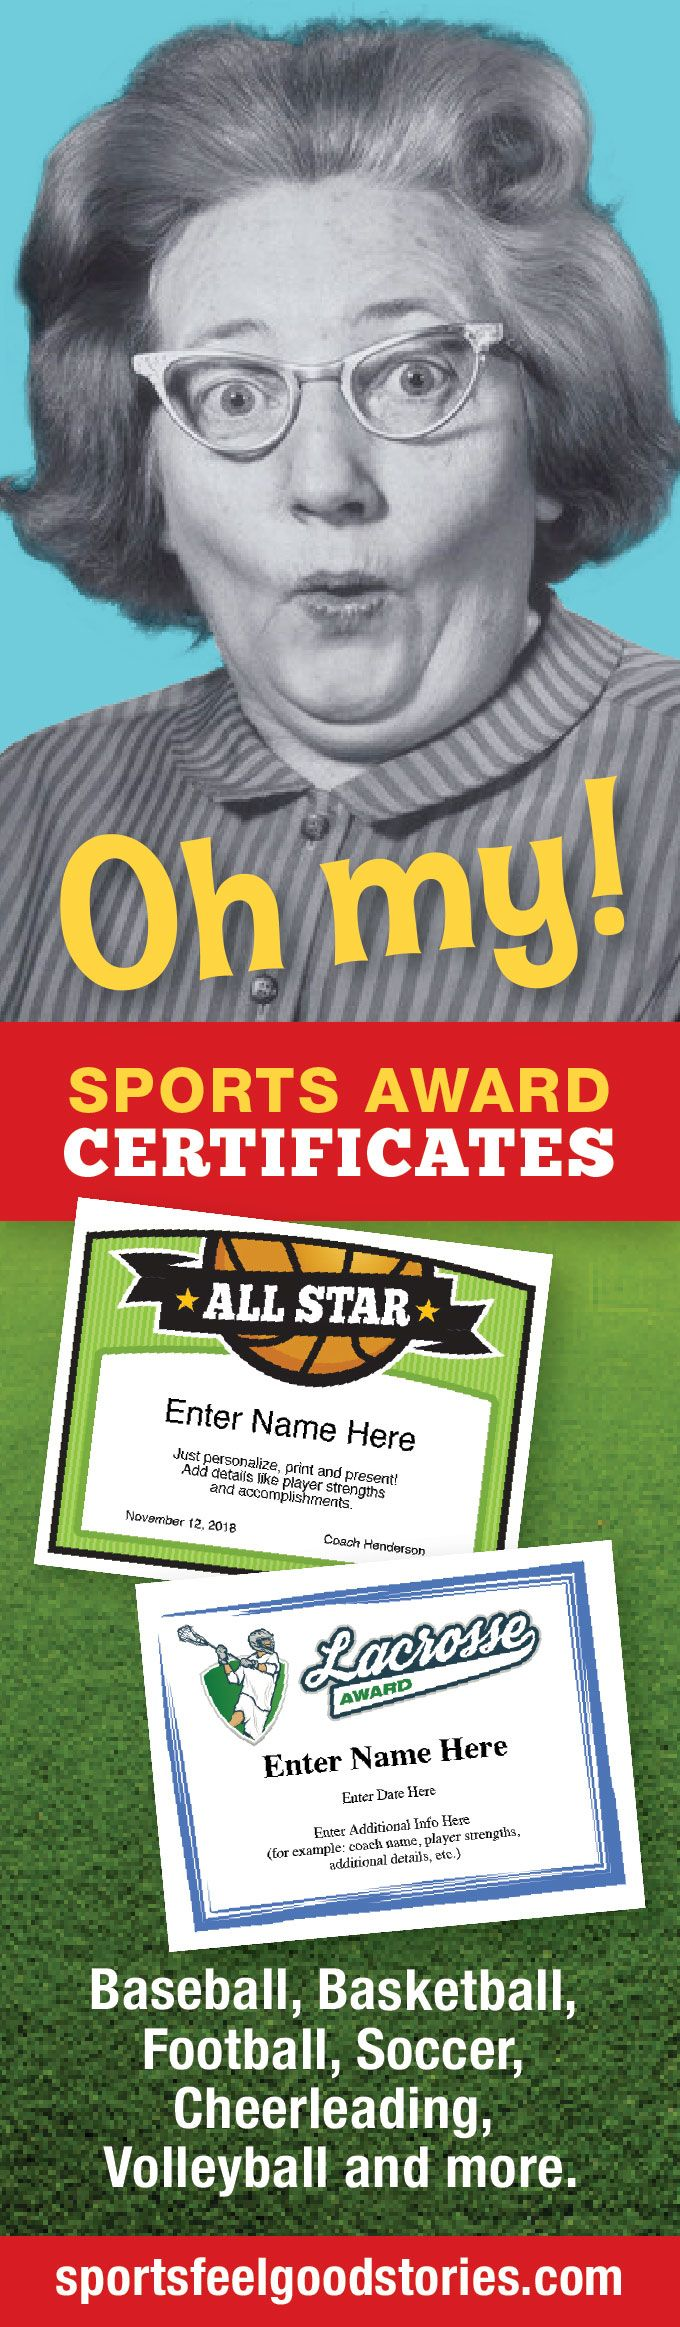 16 best images about sports certificate on pinterest